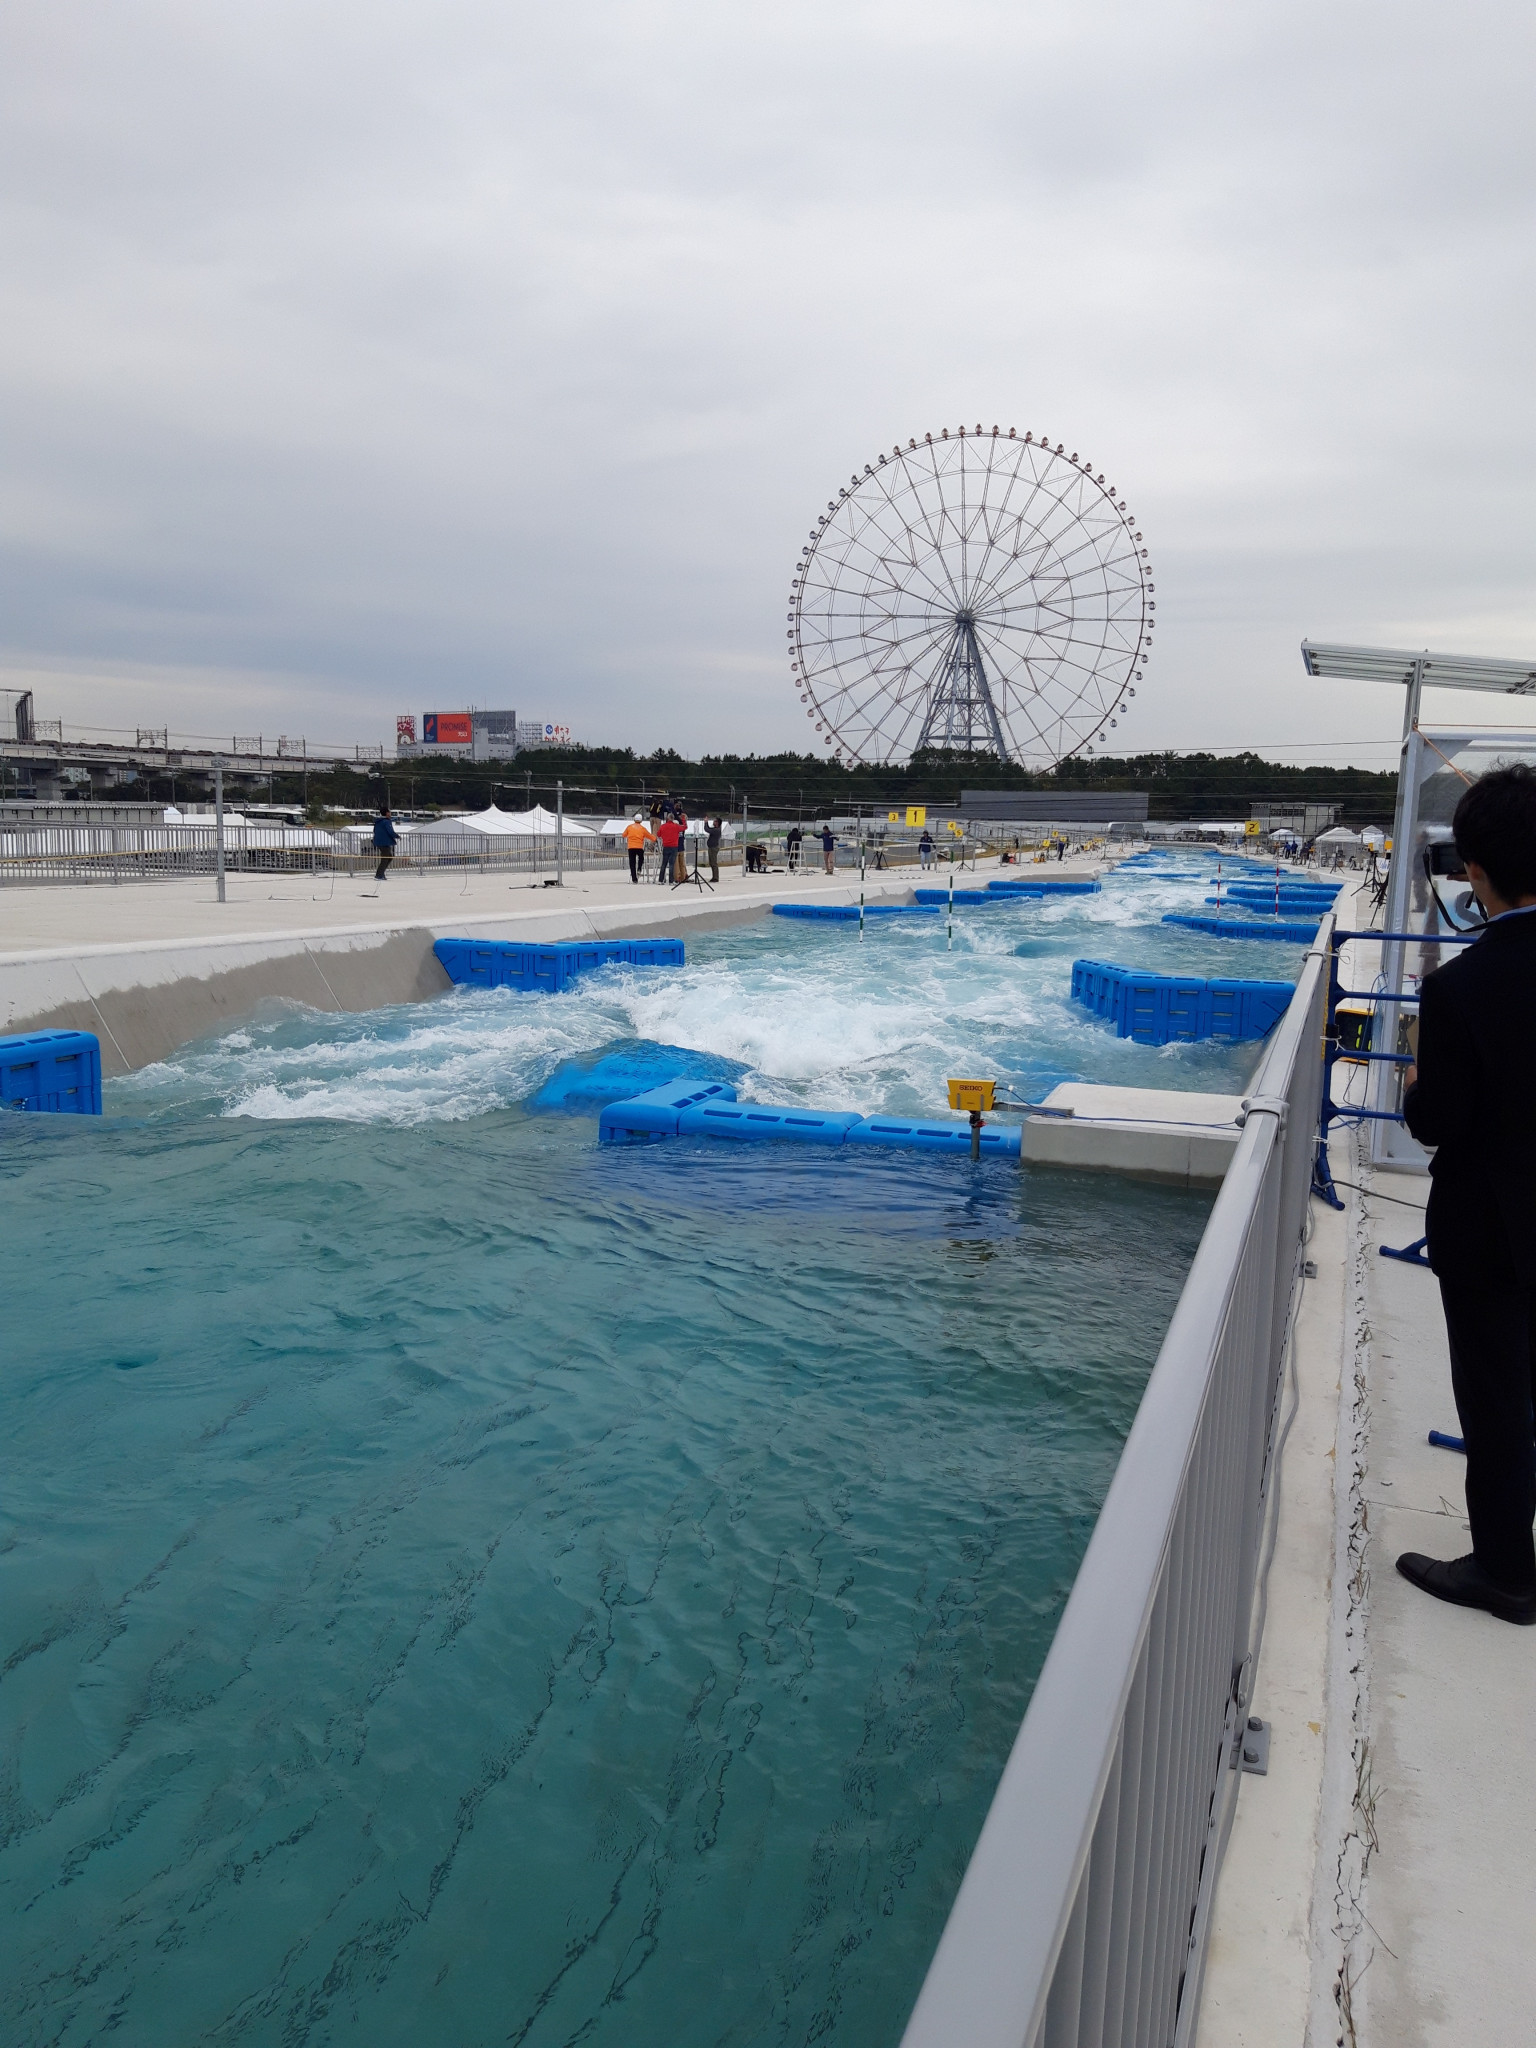 Kasai Canoe Slalom Centre is Japan's first man-made canoe slalom course ©ITG